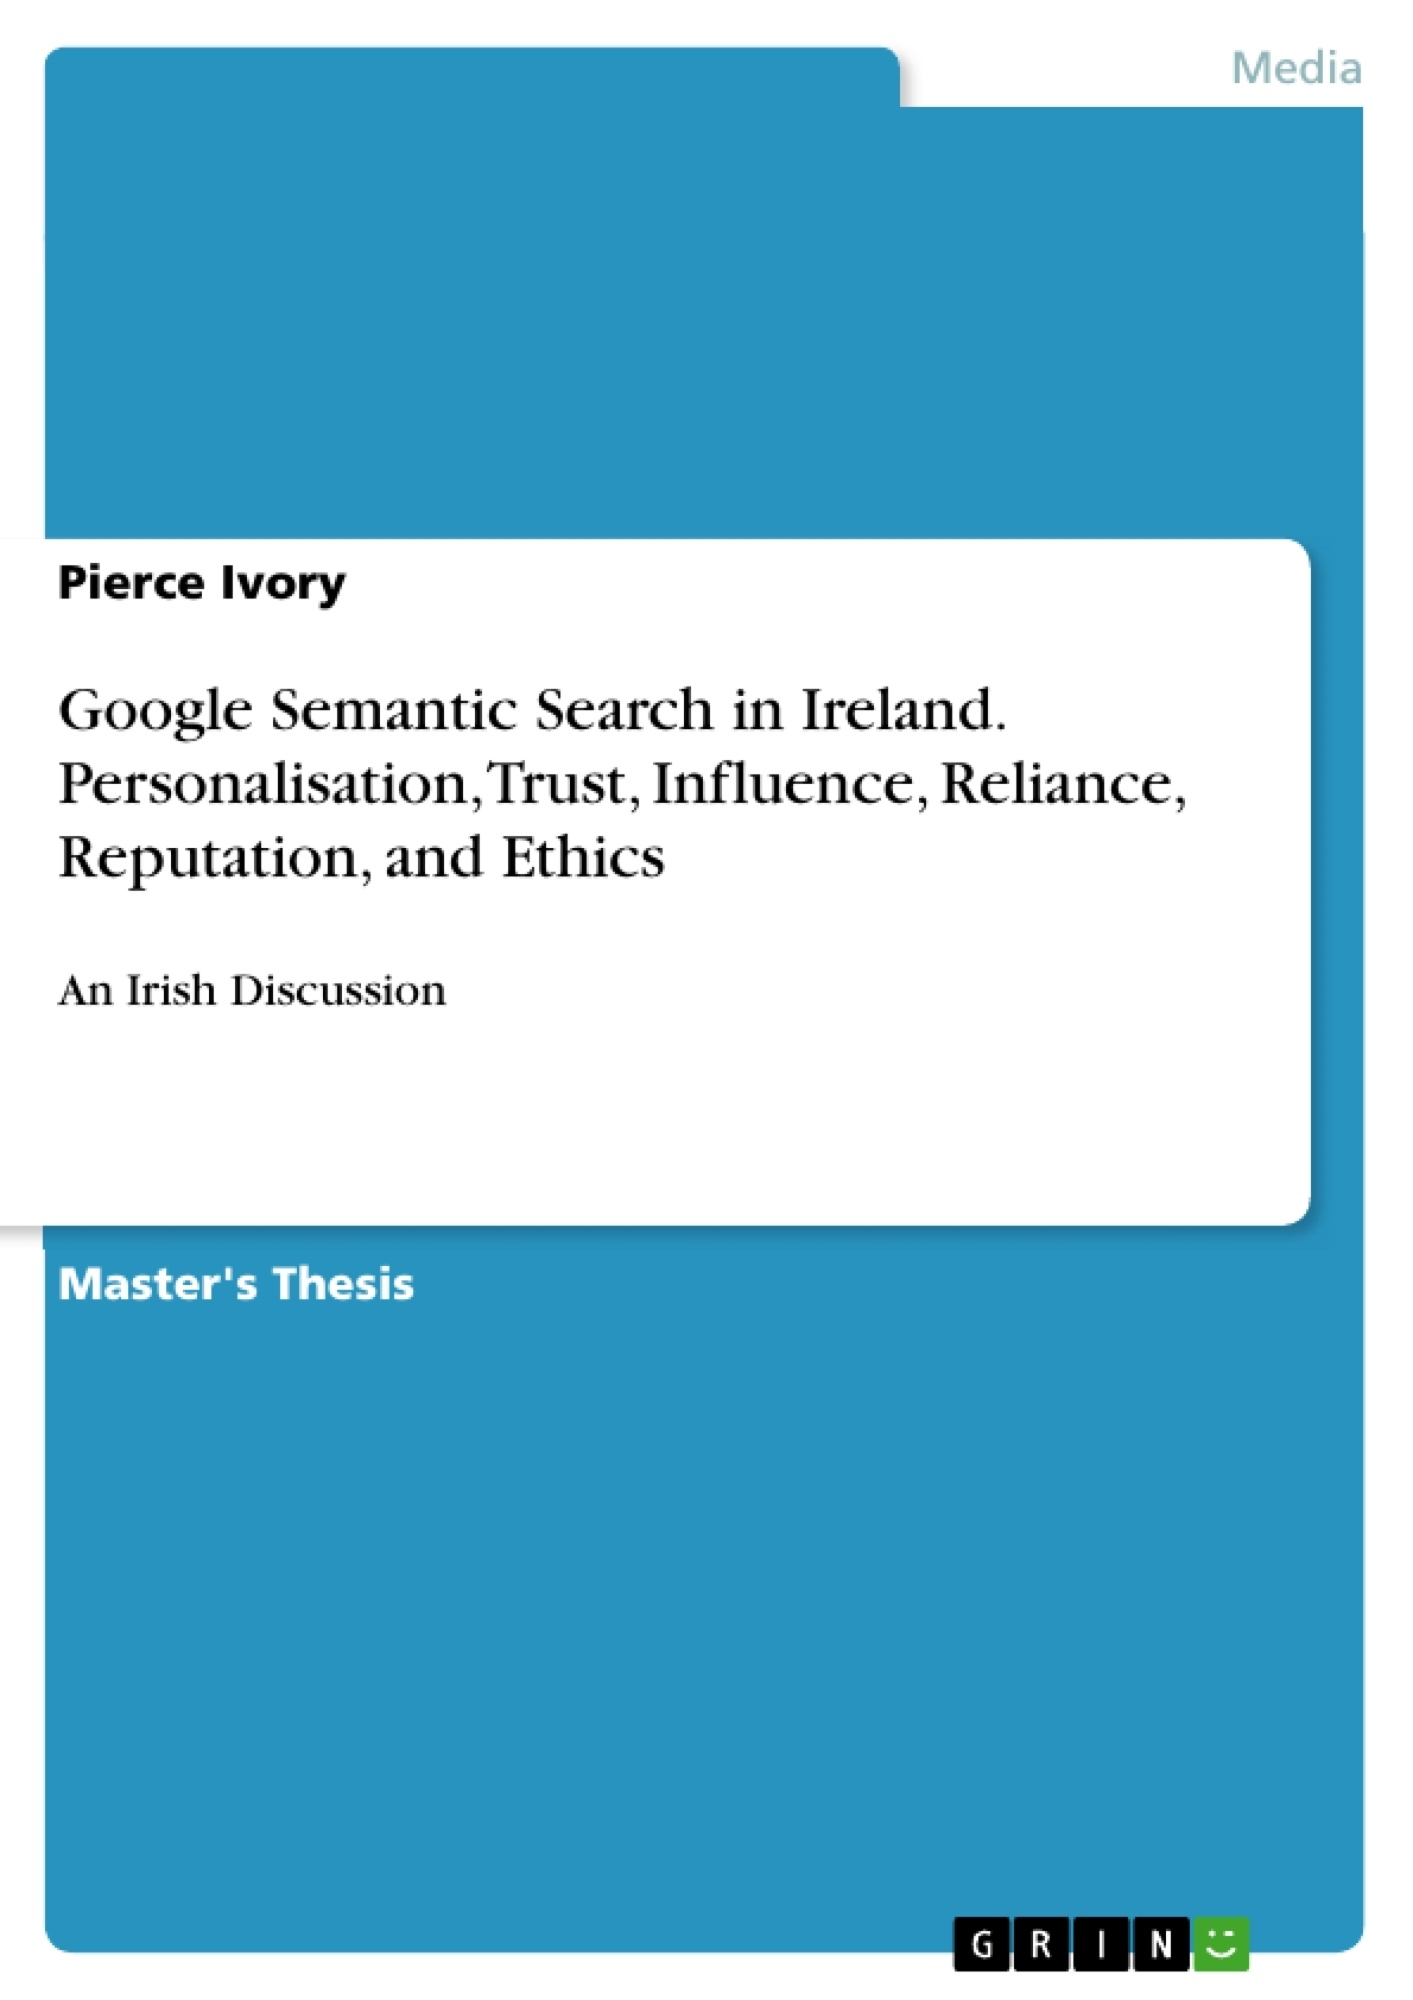 Title: Google Semantic Search in Ireland. Personalisation, Trust, Influence, Reliance, Reputation, and Ethics